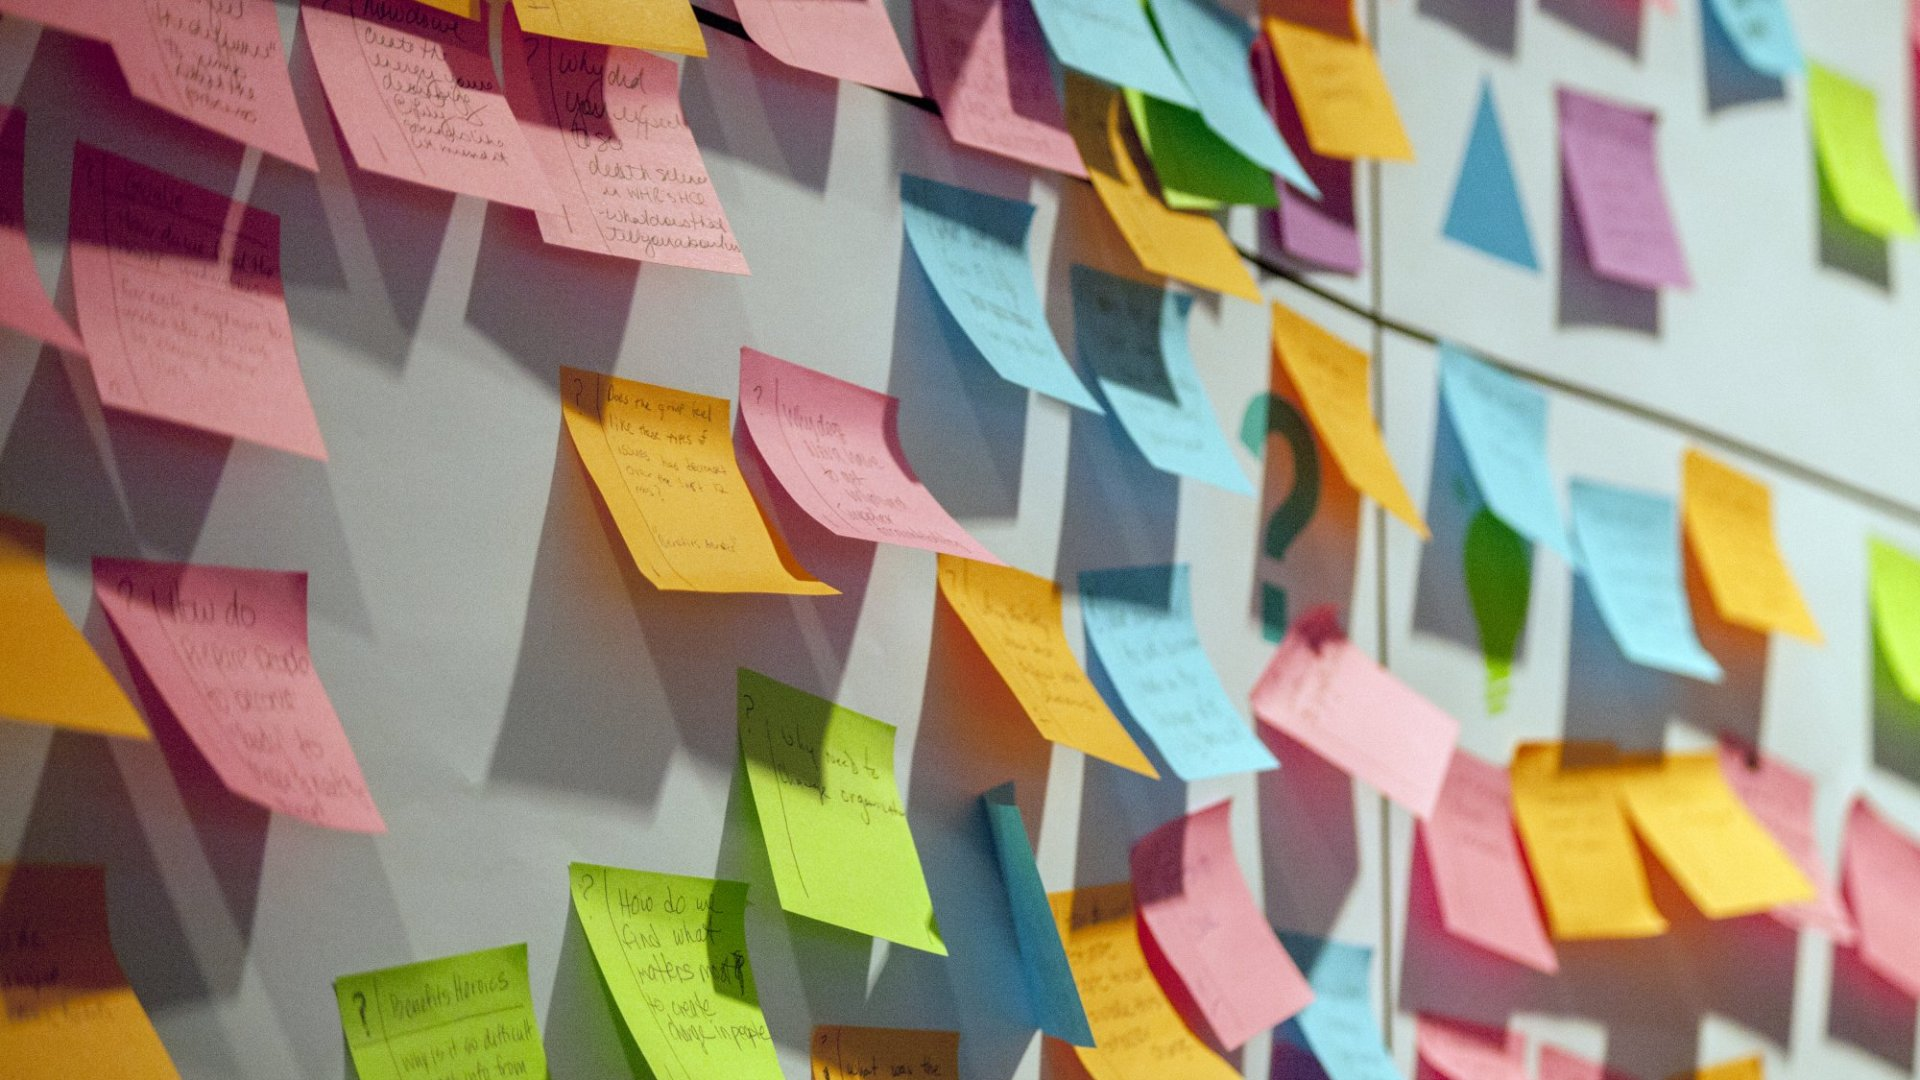 Post-it Notes are a product line that might never have happened without 3M allowing its employees to use 15 percent of their time on pet projects.